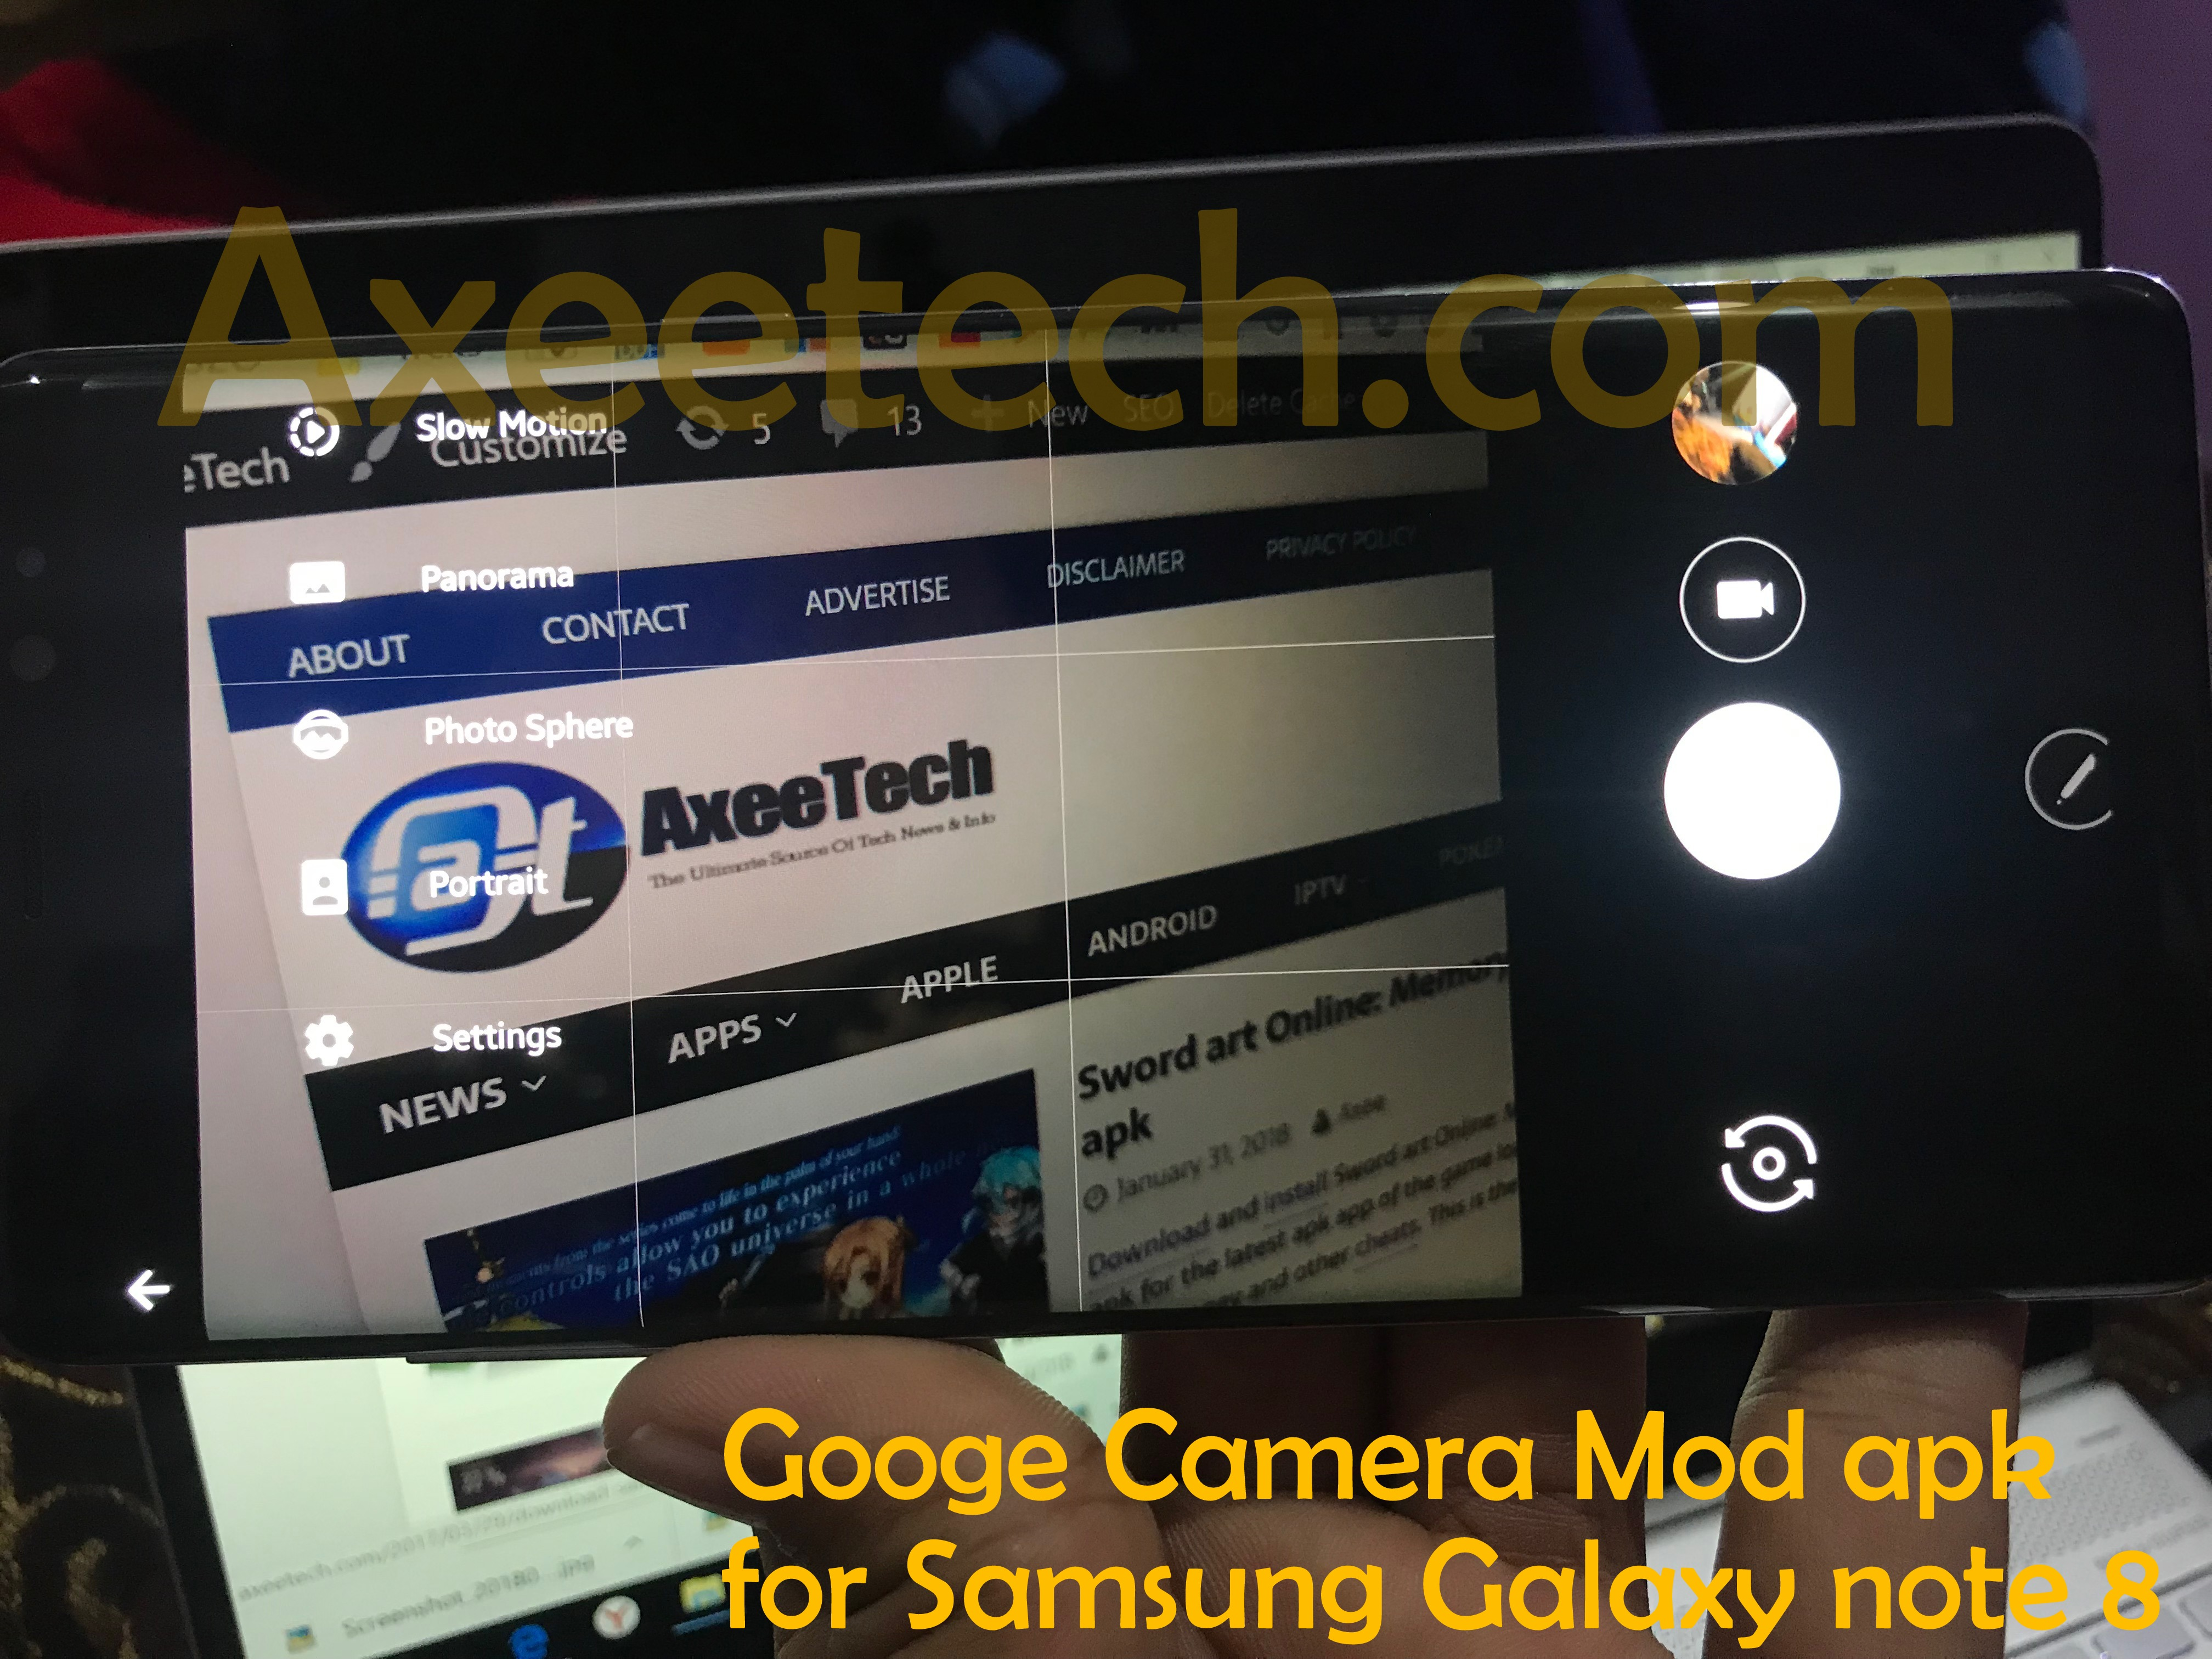 Download Google Camera Mod apk ported for Samsung Galaxy Note 8.